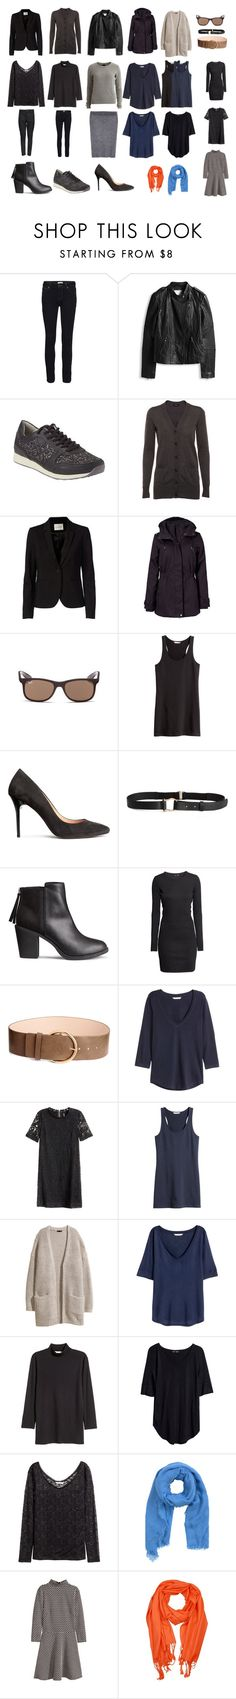 """Capsual Wardrobe Basic"" by lone-haure-norrevang on Polyvore featuring FiveUnits, Jakke, Ray-Ban, VILA, H&M and MANGO"